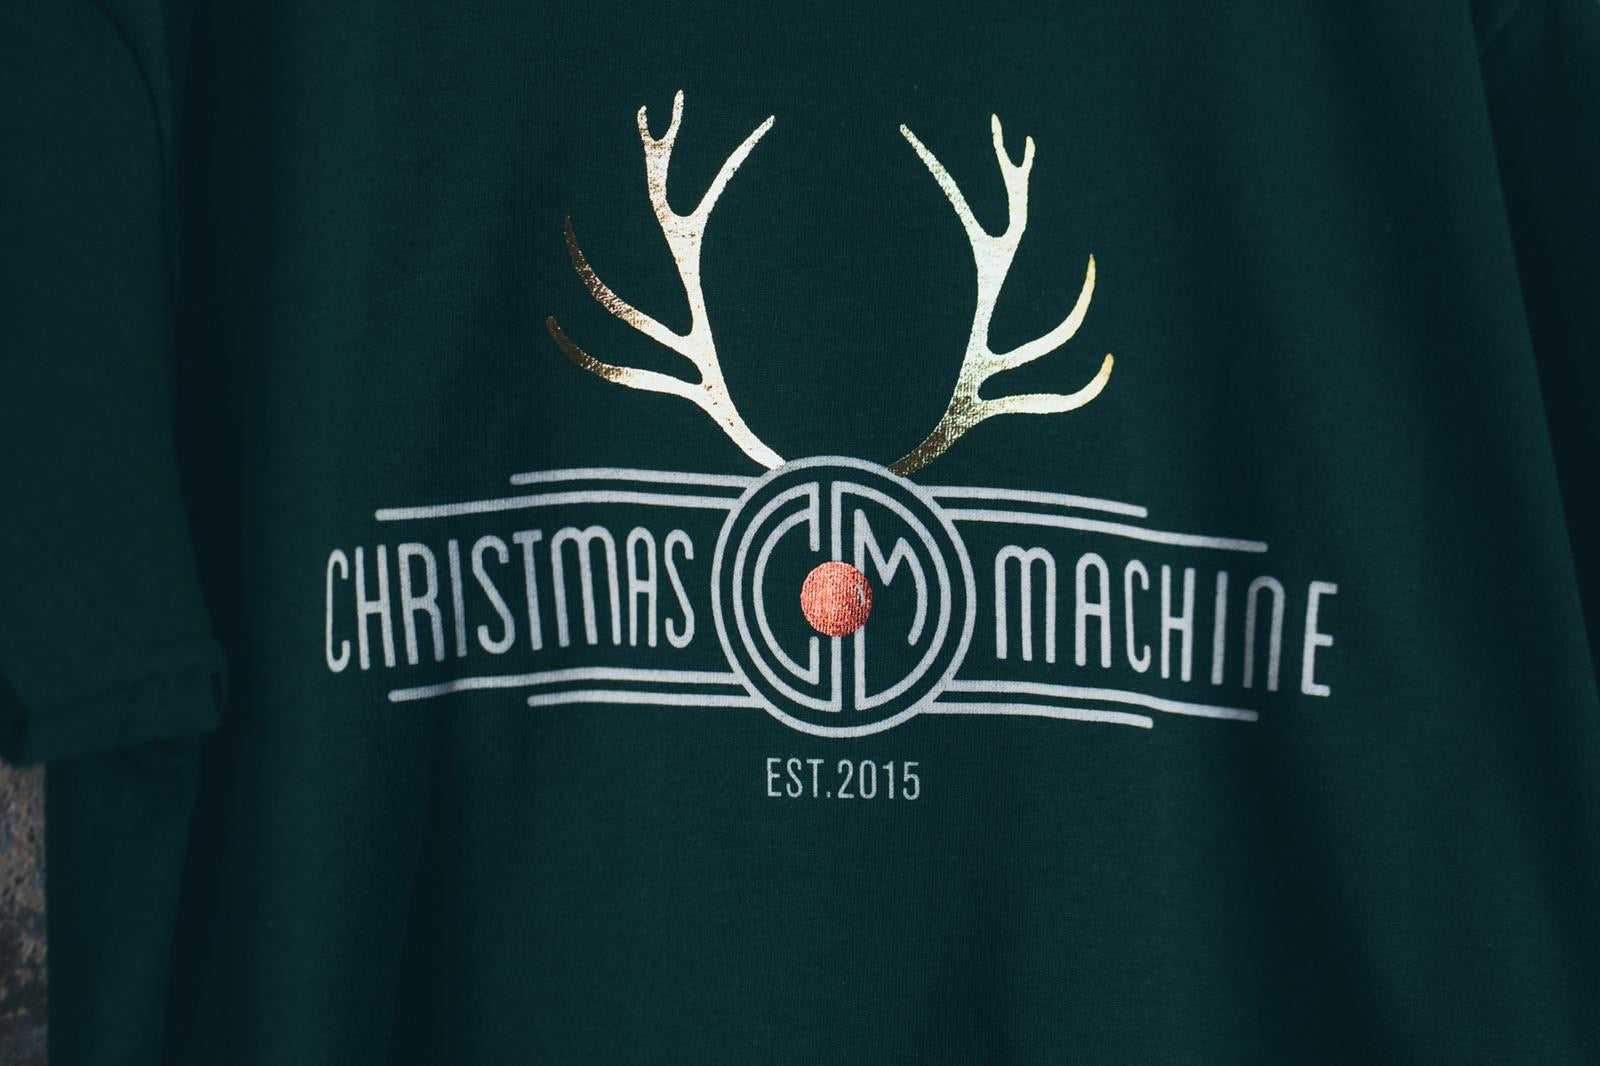 Christmas&Machine Tee. Green